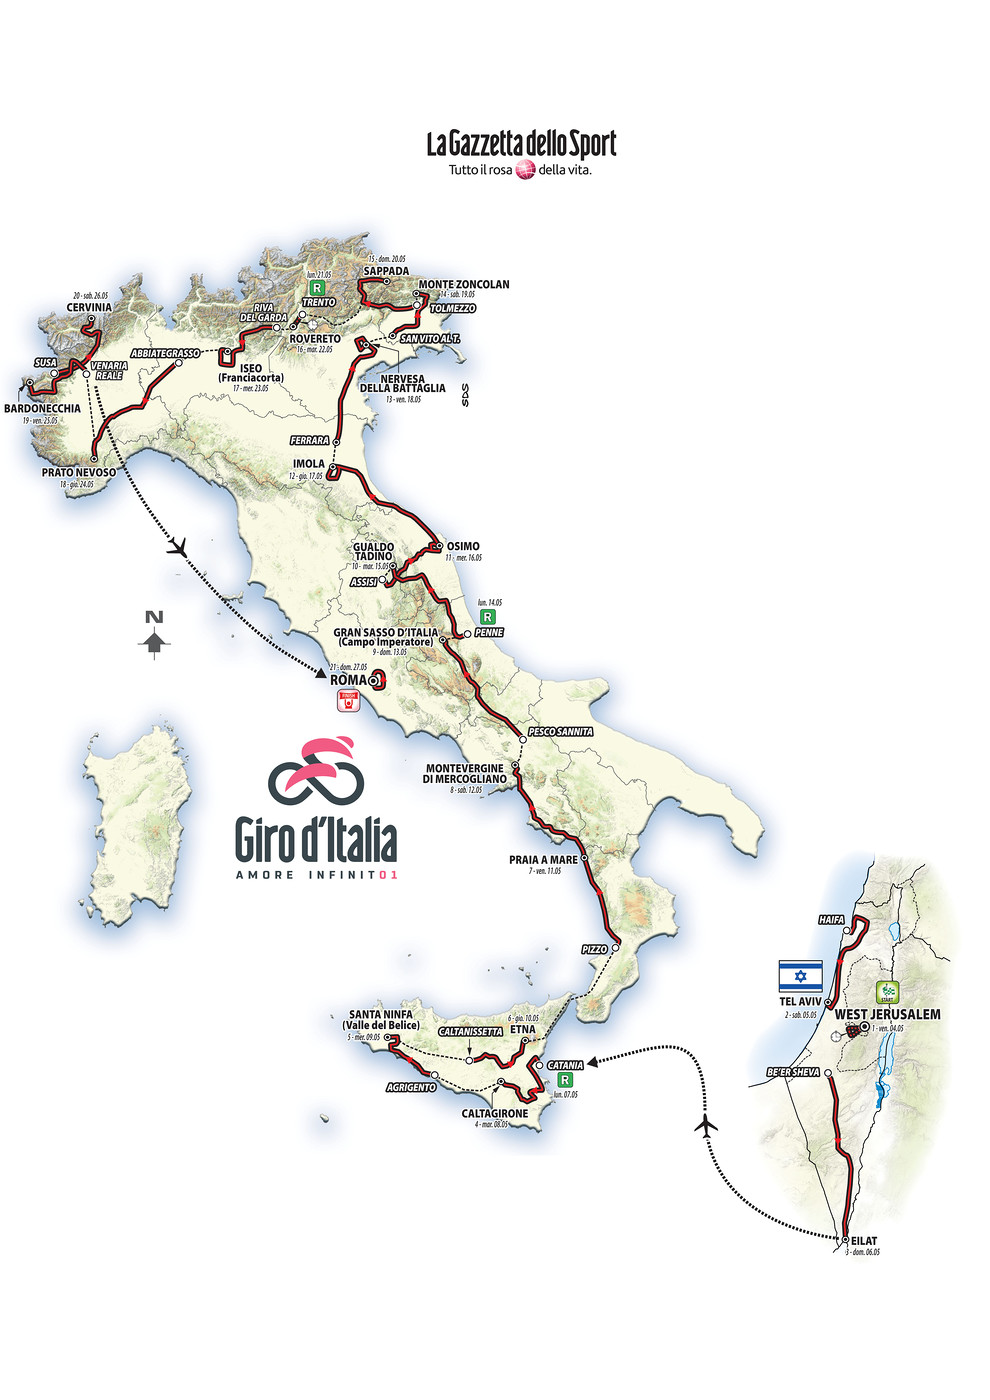 Giro d'Italia Route Map